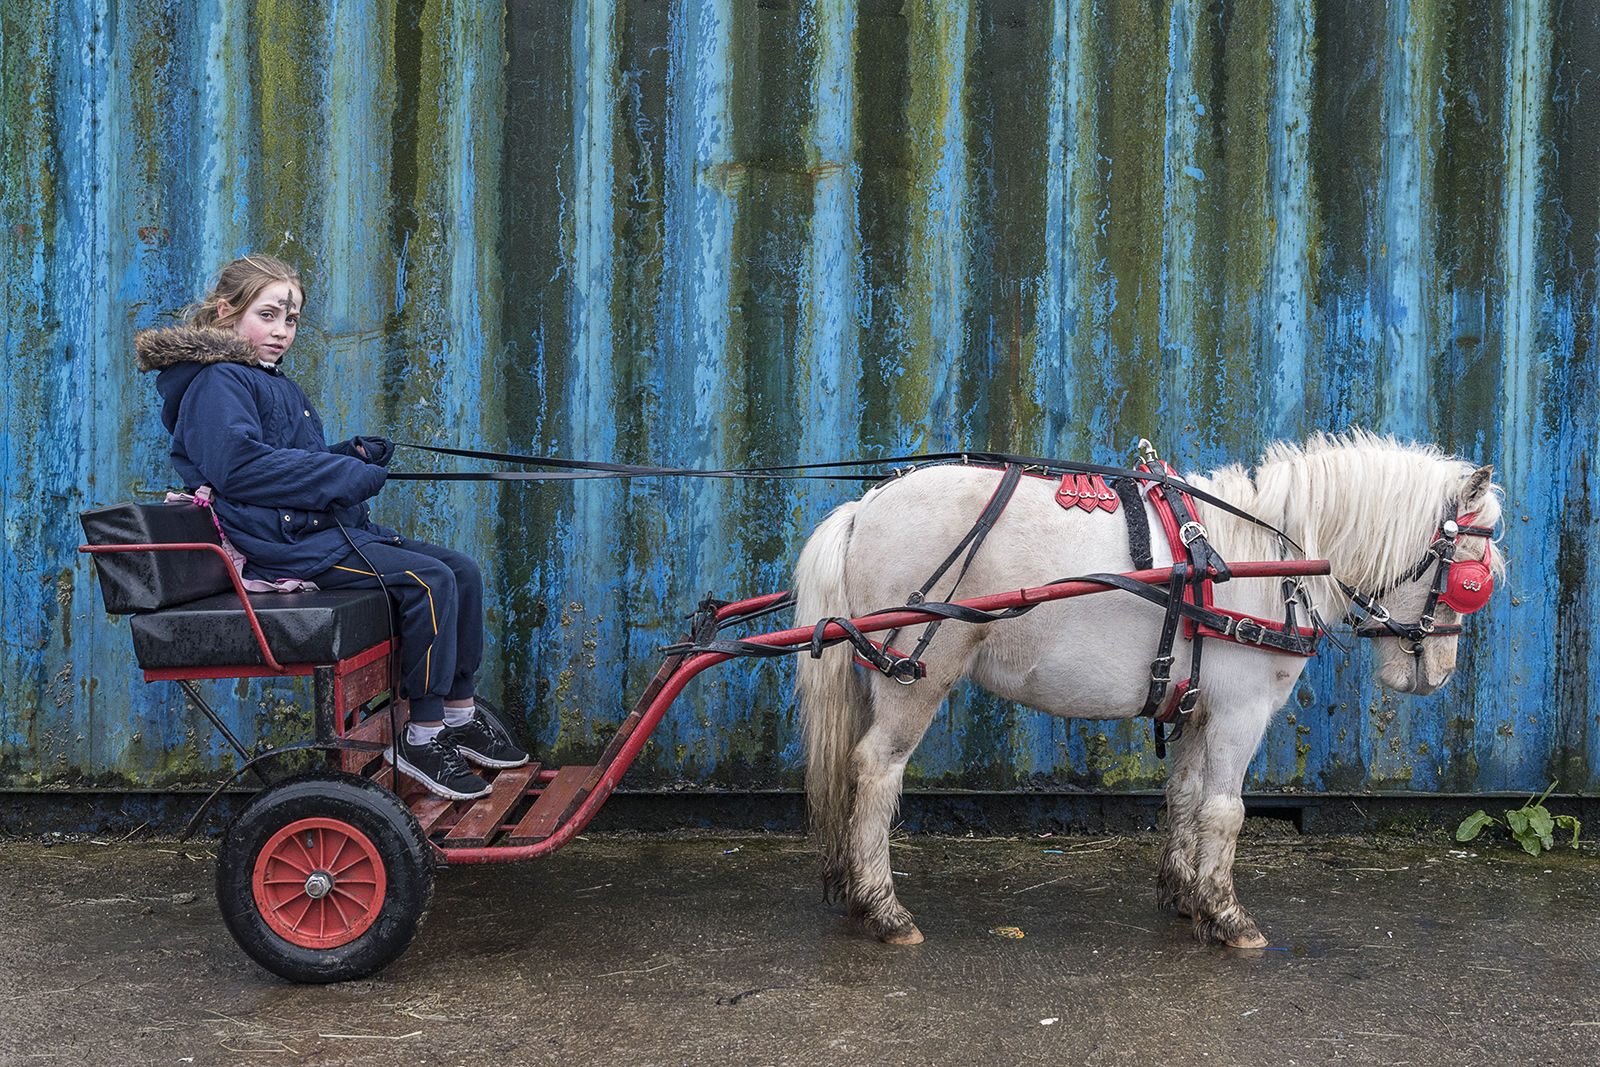 Caroline and her Pony, Ash Wednesday, Cork, Ireland 2020